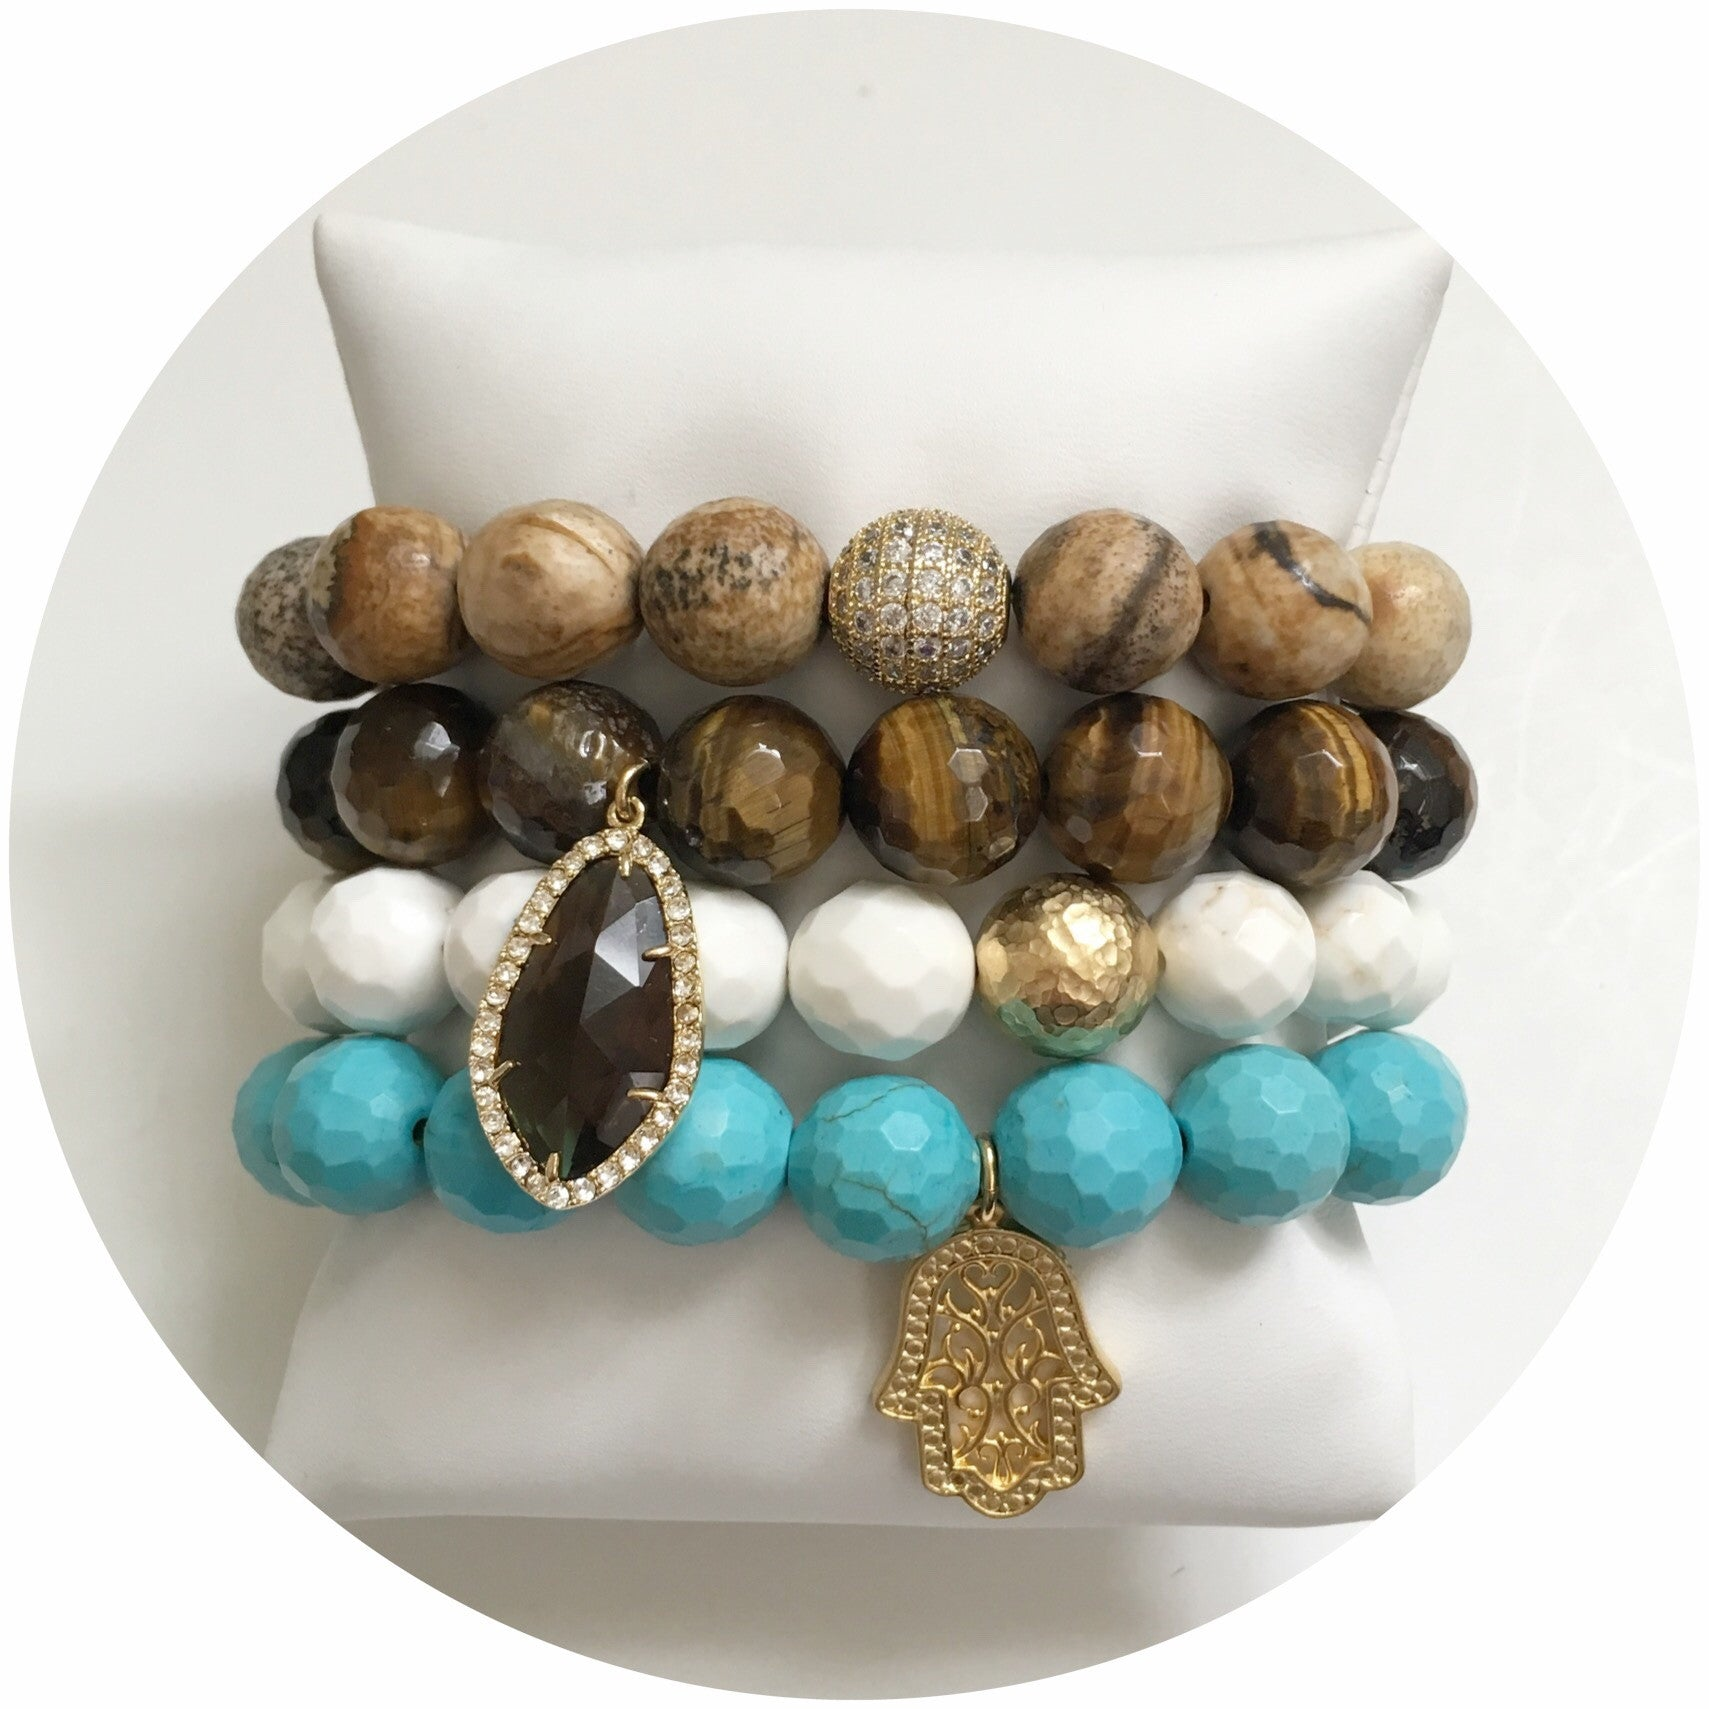 Arm Party #34 - Oriana Lamarca LLC